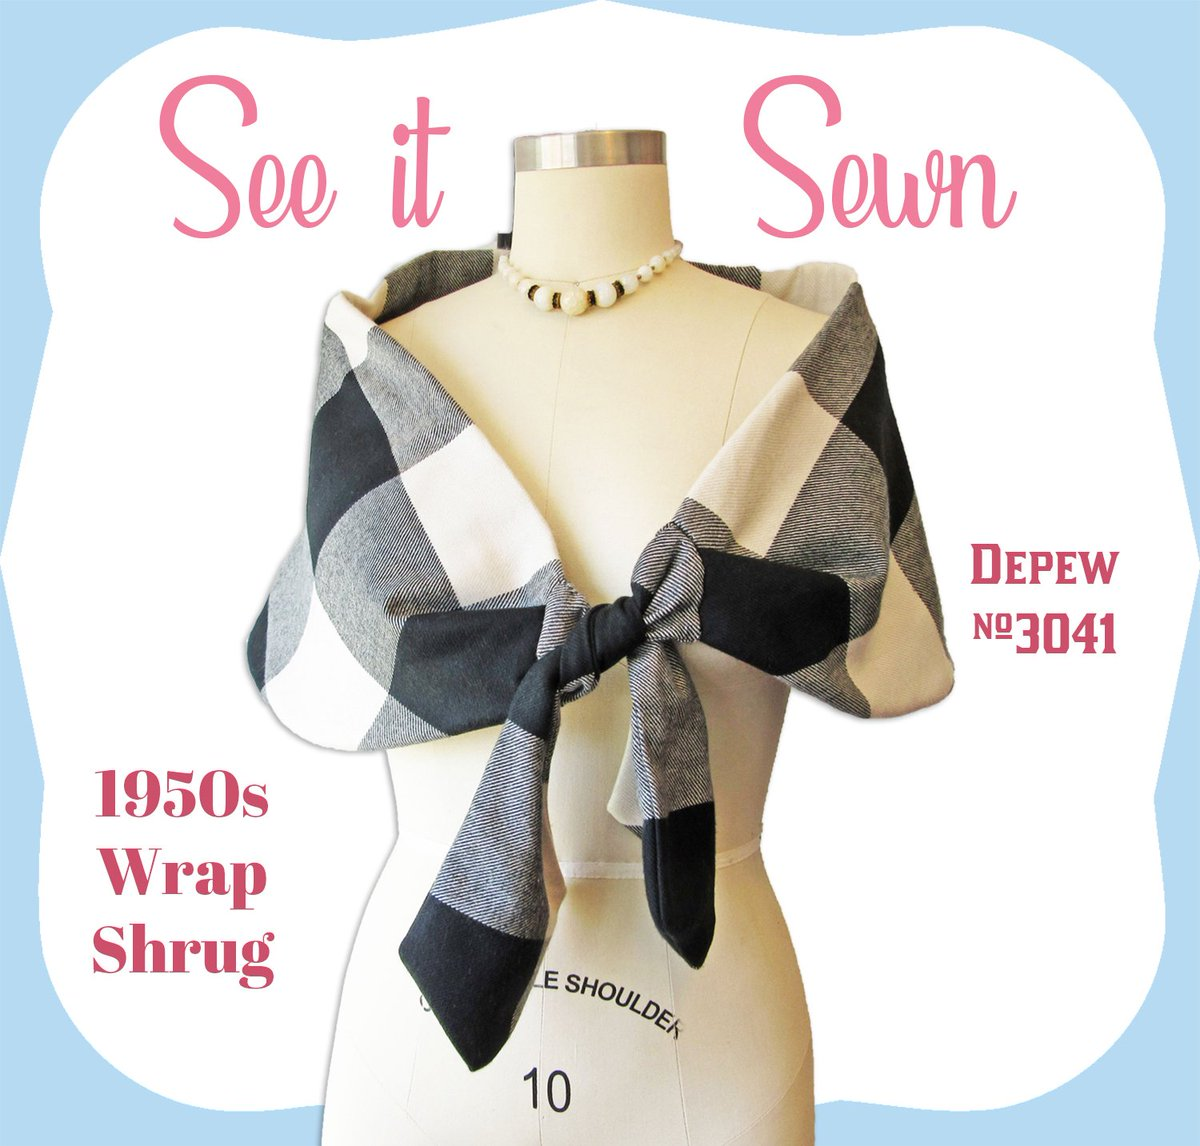 4163862f777 ... about you and oh by the way I respect you as a woman...  http   www.mrsdepew.com accessories 1950s-capes-purse-and-beret.html  …pic.twitter.com B5L5LhjM2d